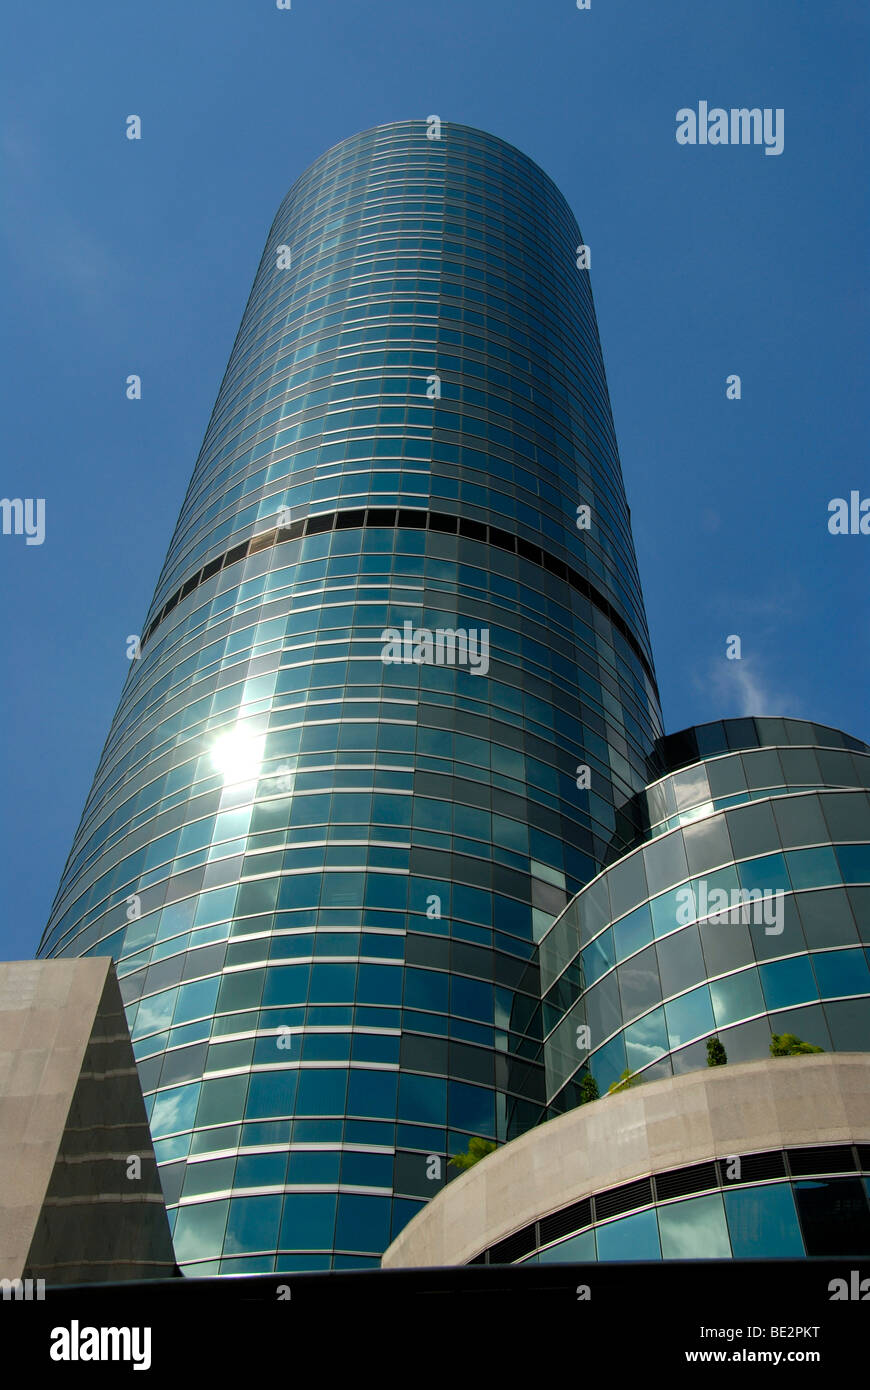 Modern city, round building with lots of glass towering into the sky, Hotel Intercontinental, Chit Lom, Sukhumvit, - Stock Image